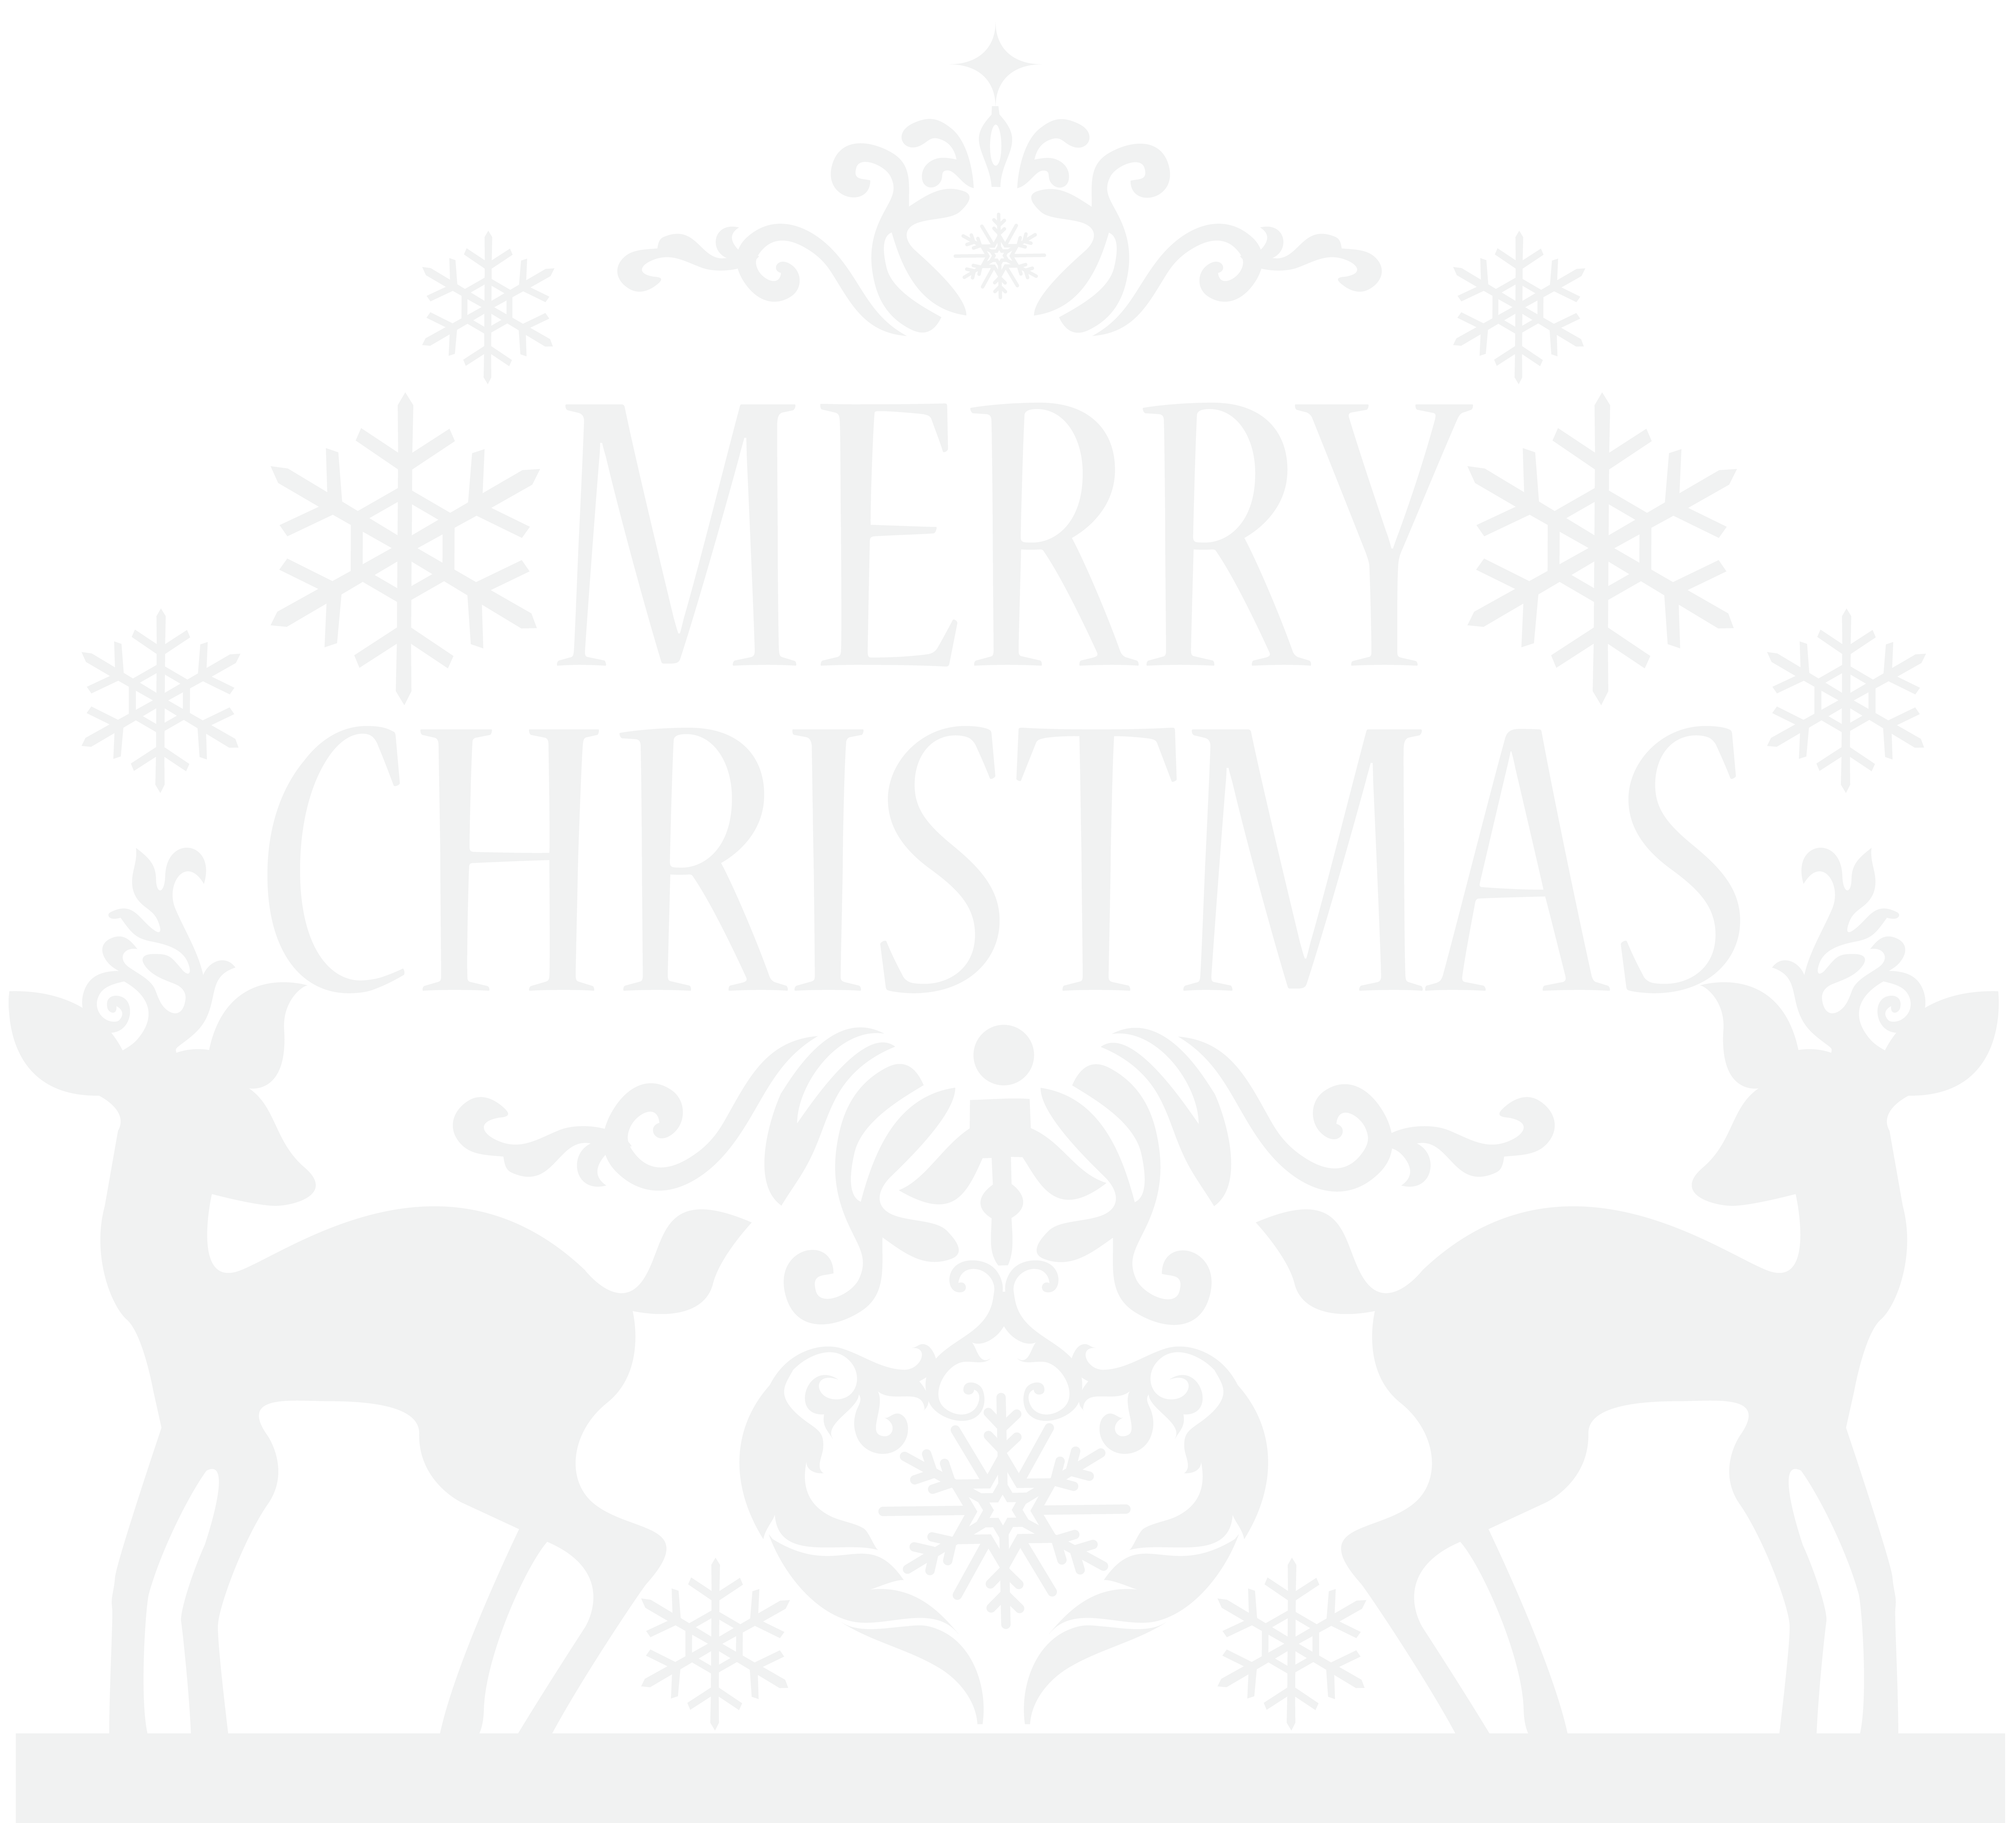 Christmas eve clipart black and white image download Merry Christmas Transparent PNG Clip Art Image | Gallery ... image download